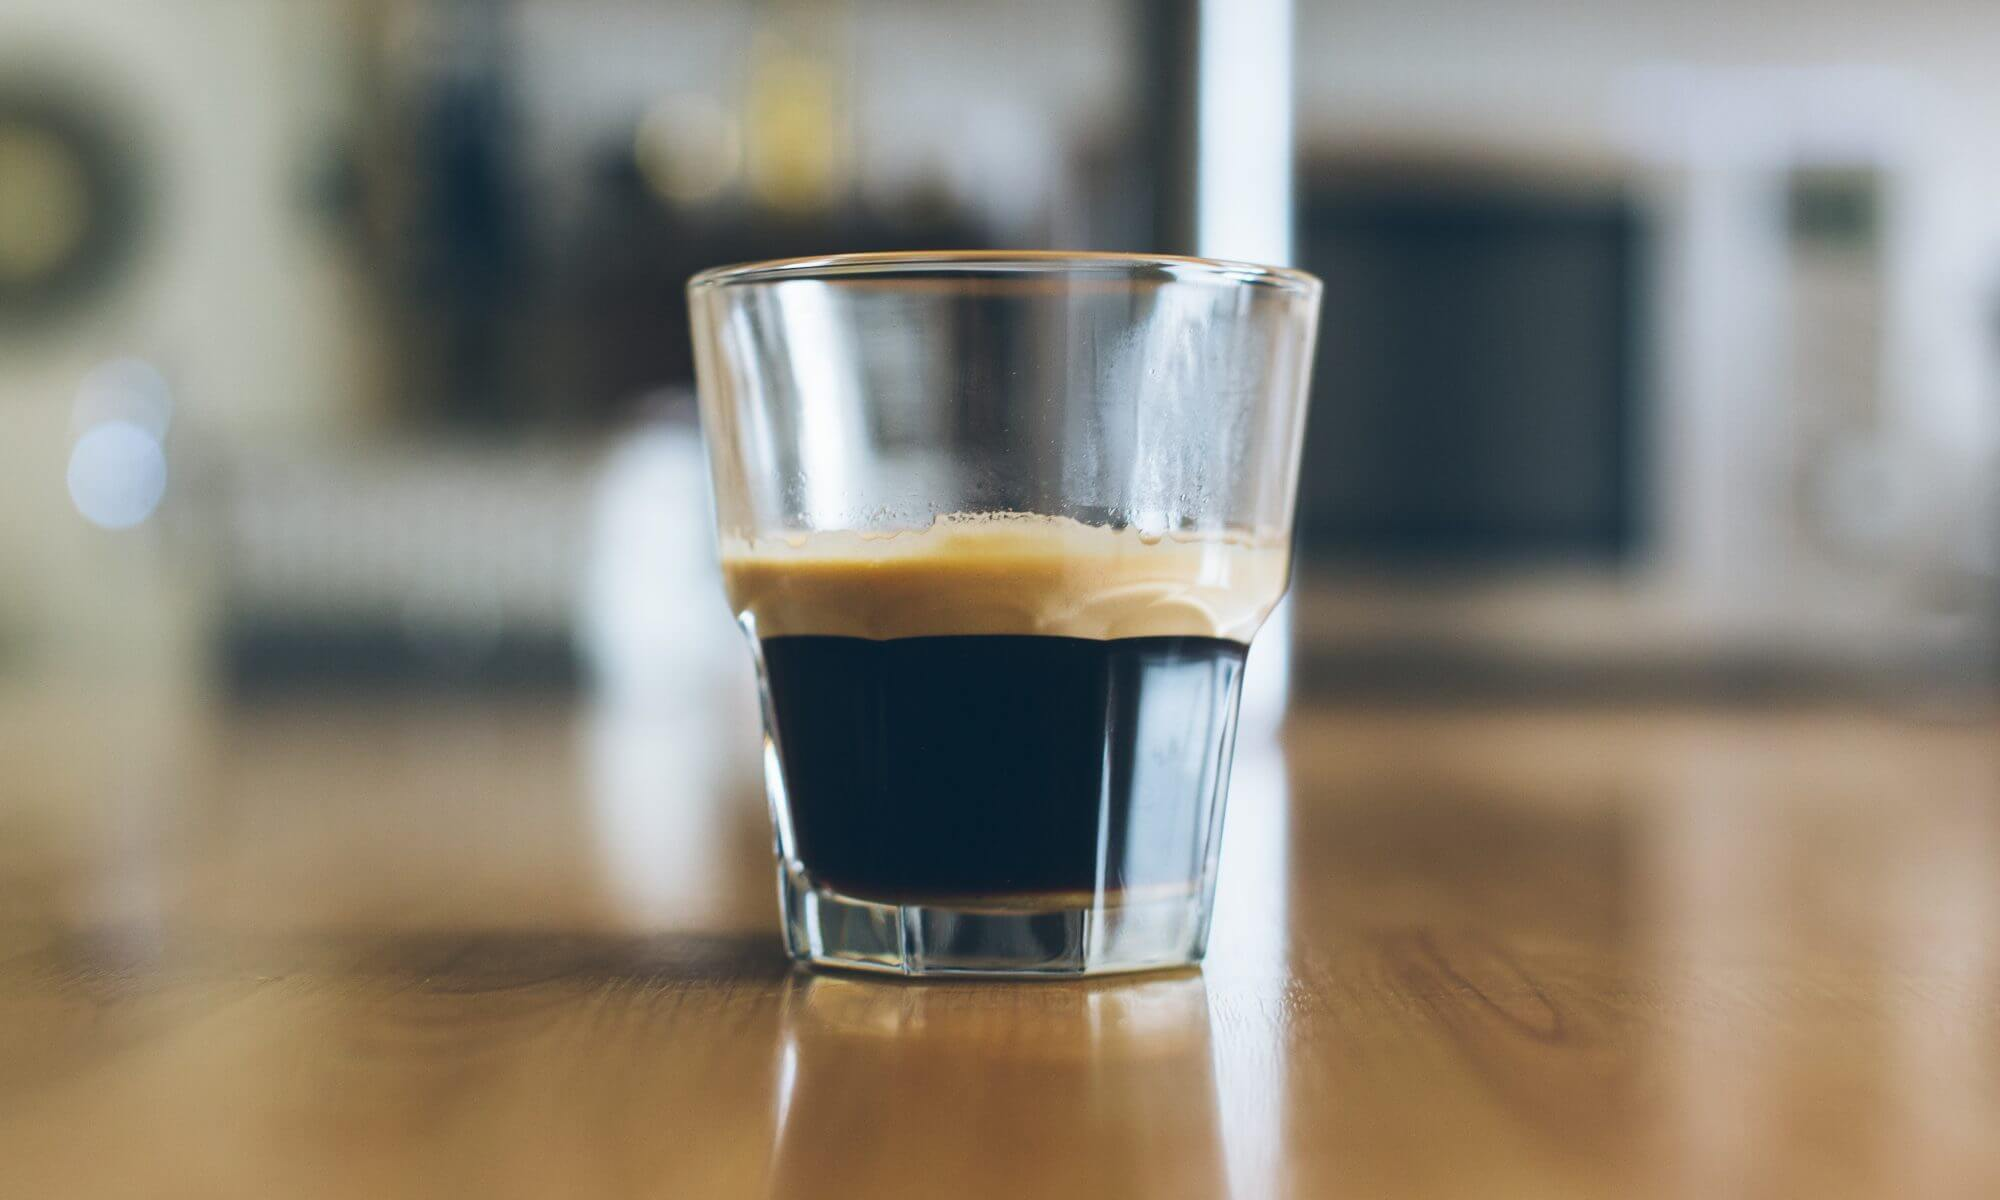 Our blog is best enjoyed with freshly brewed coffee!